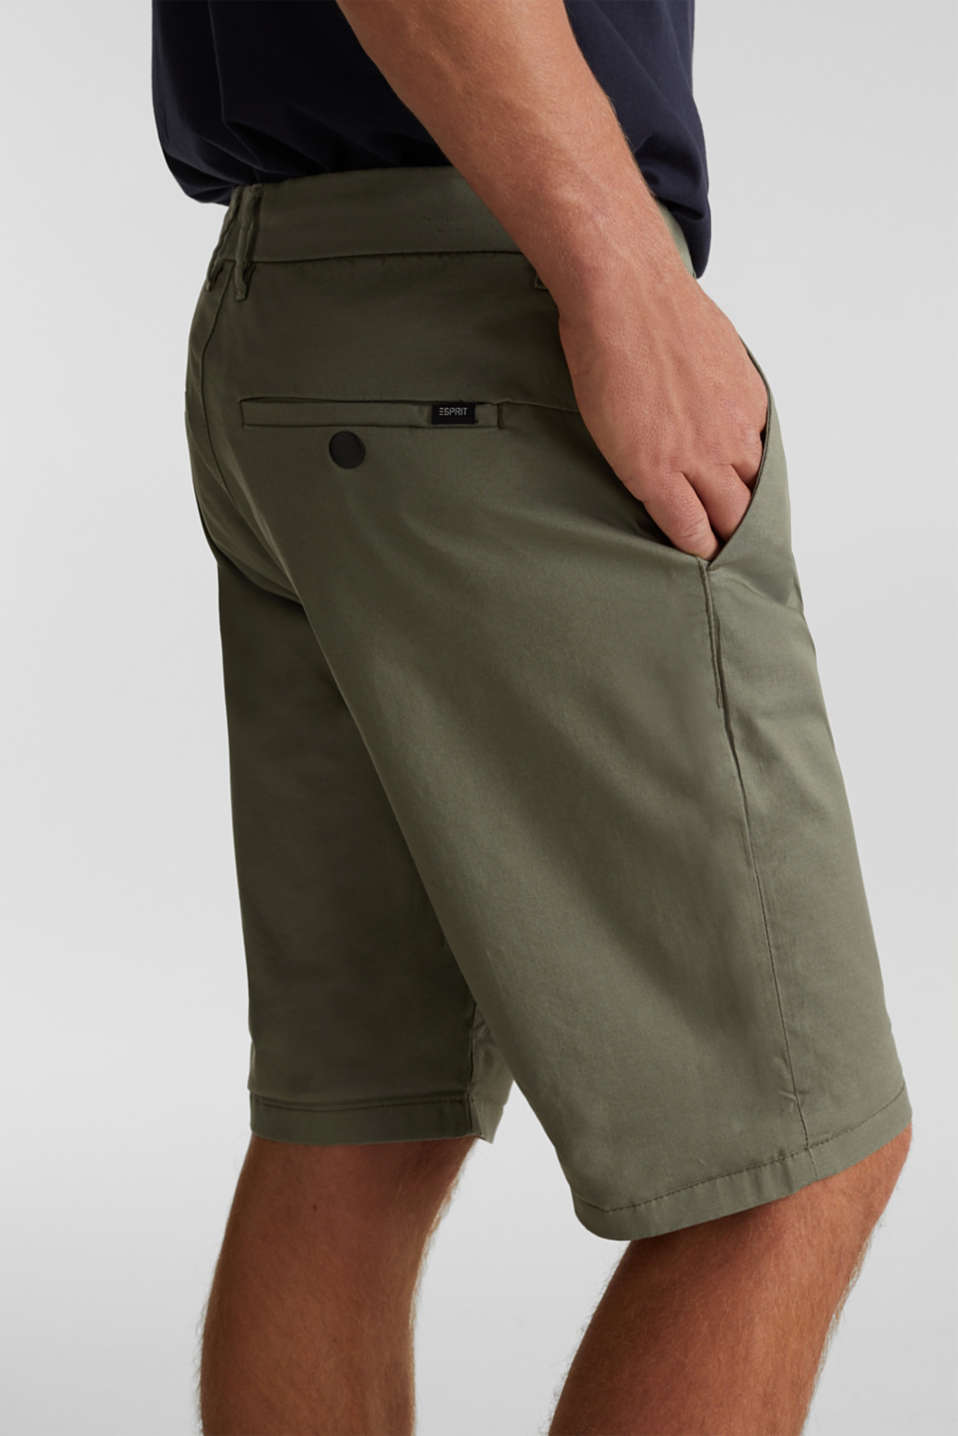 Shorts with COOLMAX®, organic cotton, LIGHT KHAKI, detail image number 2